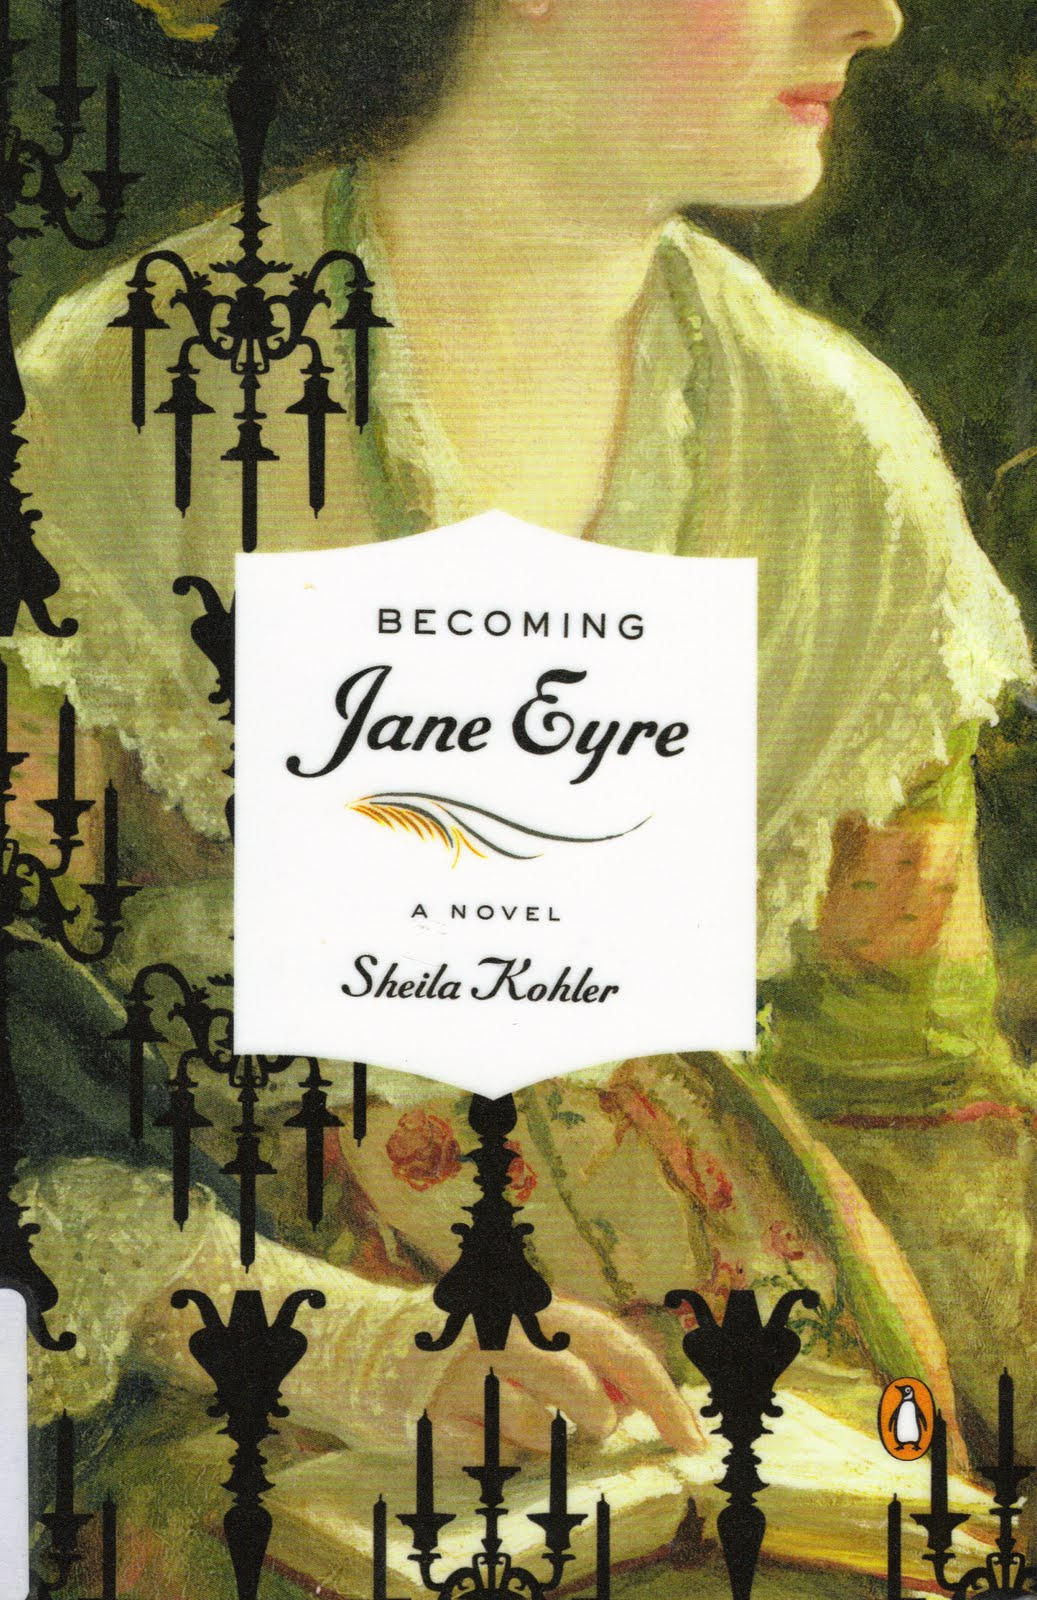 a discussion of the conclusions of the narration in the first twelve chapters of the novel jane eyre